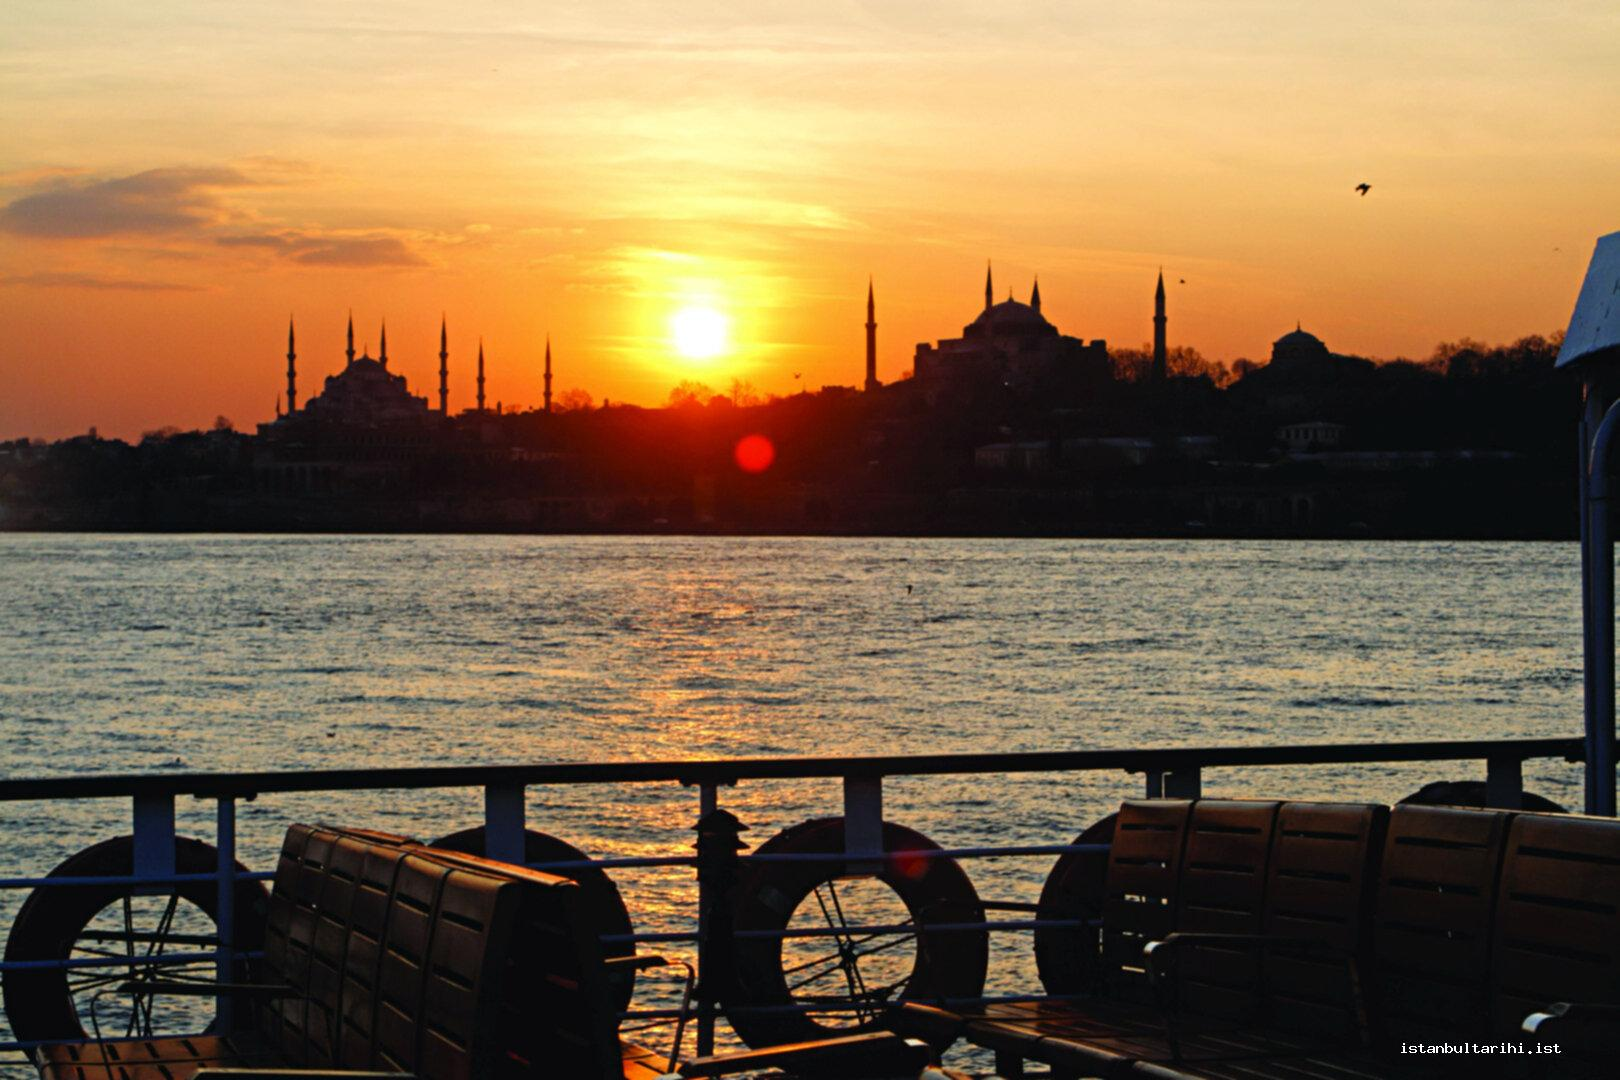 38- A sunset in Istanbul, Blue Mosque and Hagia Sophia Mosque